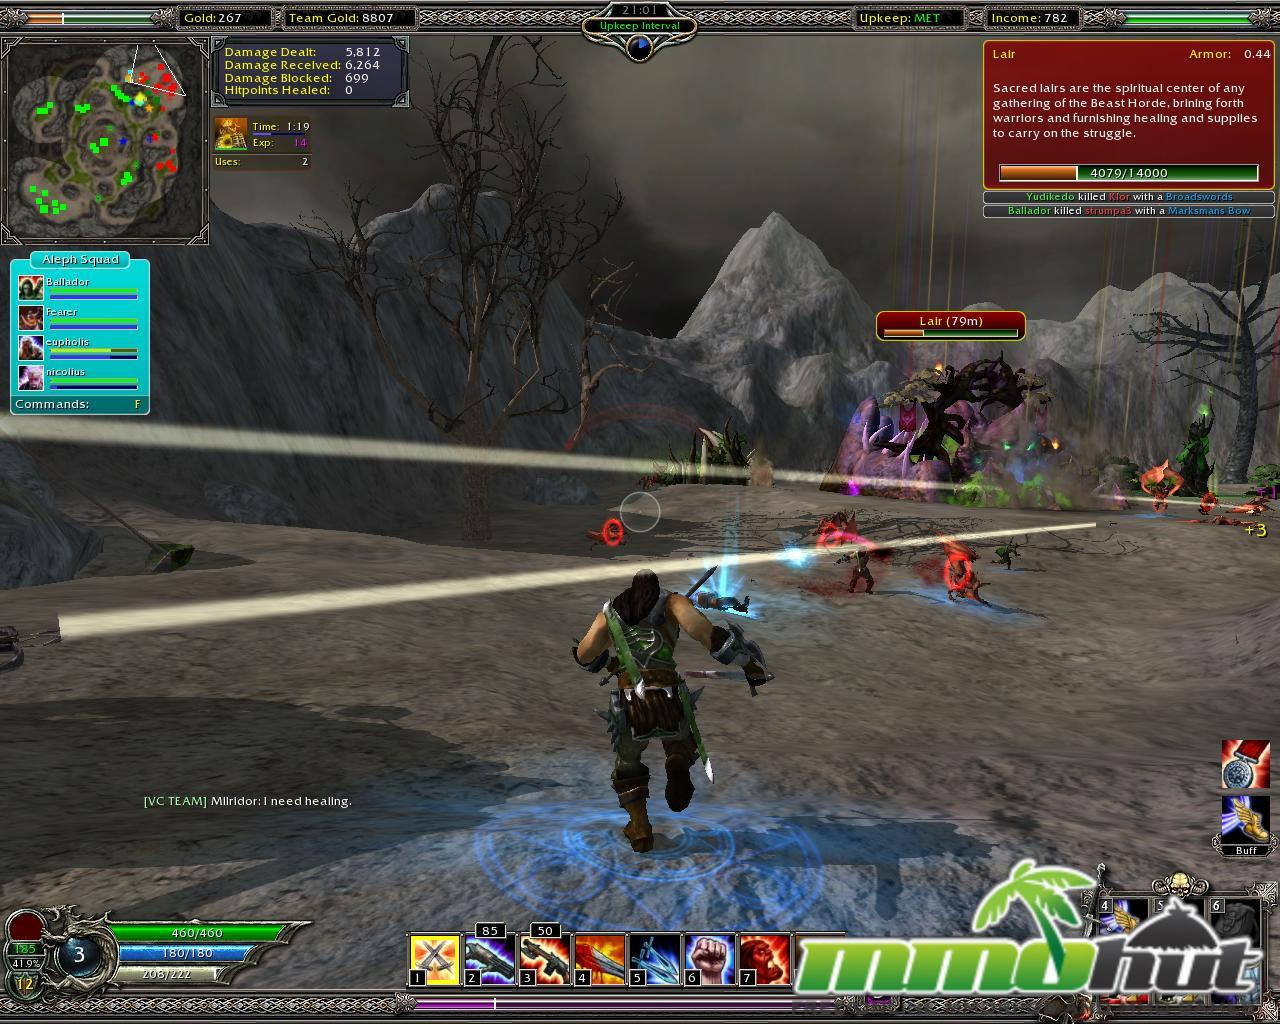 Linux MMORPGs